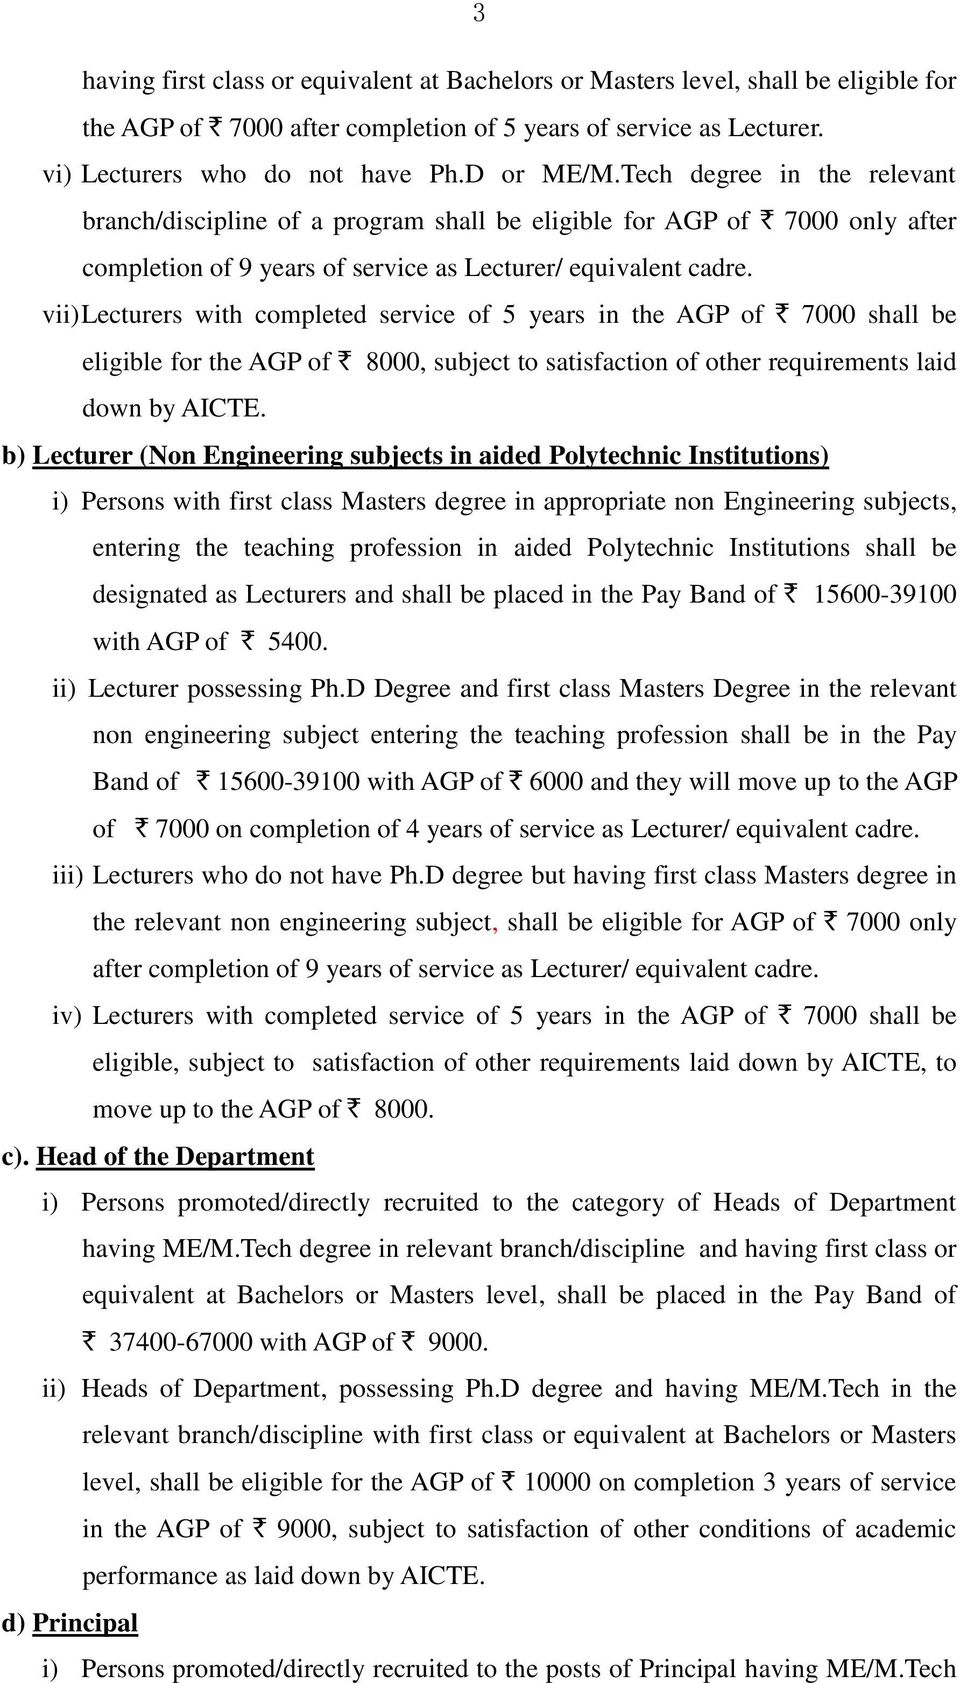 vii) Lecturers with completed service of 5 years in the AGP of ` 7000 shall be eligible for the AGP of ` 8000, subject to satisfaction of other requirements laid down by AICTE.